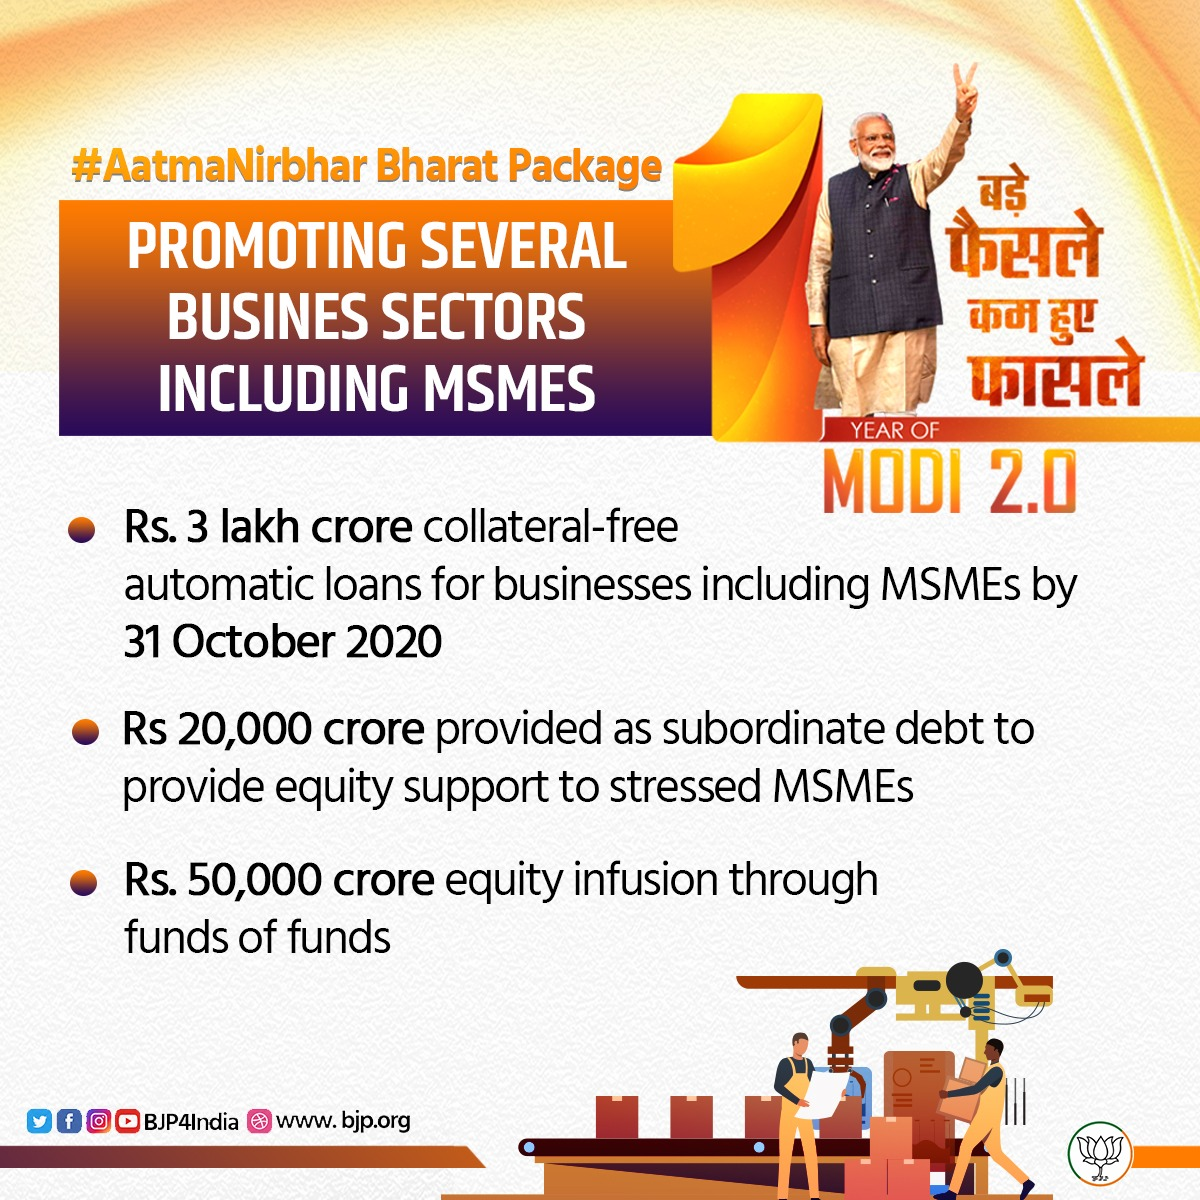 Aatmanirbhar Bharat Package: Promoting several business sectors including MSMESs  • Rs 3. lakh crore collateral-free automatic loans for business including MSMEs.  • Rs. 20,000 crore provided as subordinate debt to provide equity support to stresses MSMEs.  #1YearOfModi2 https://t.co/0zm3uIyagL